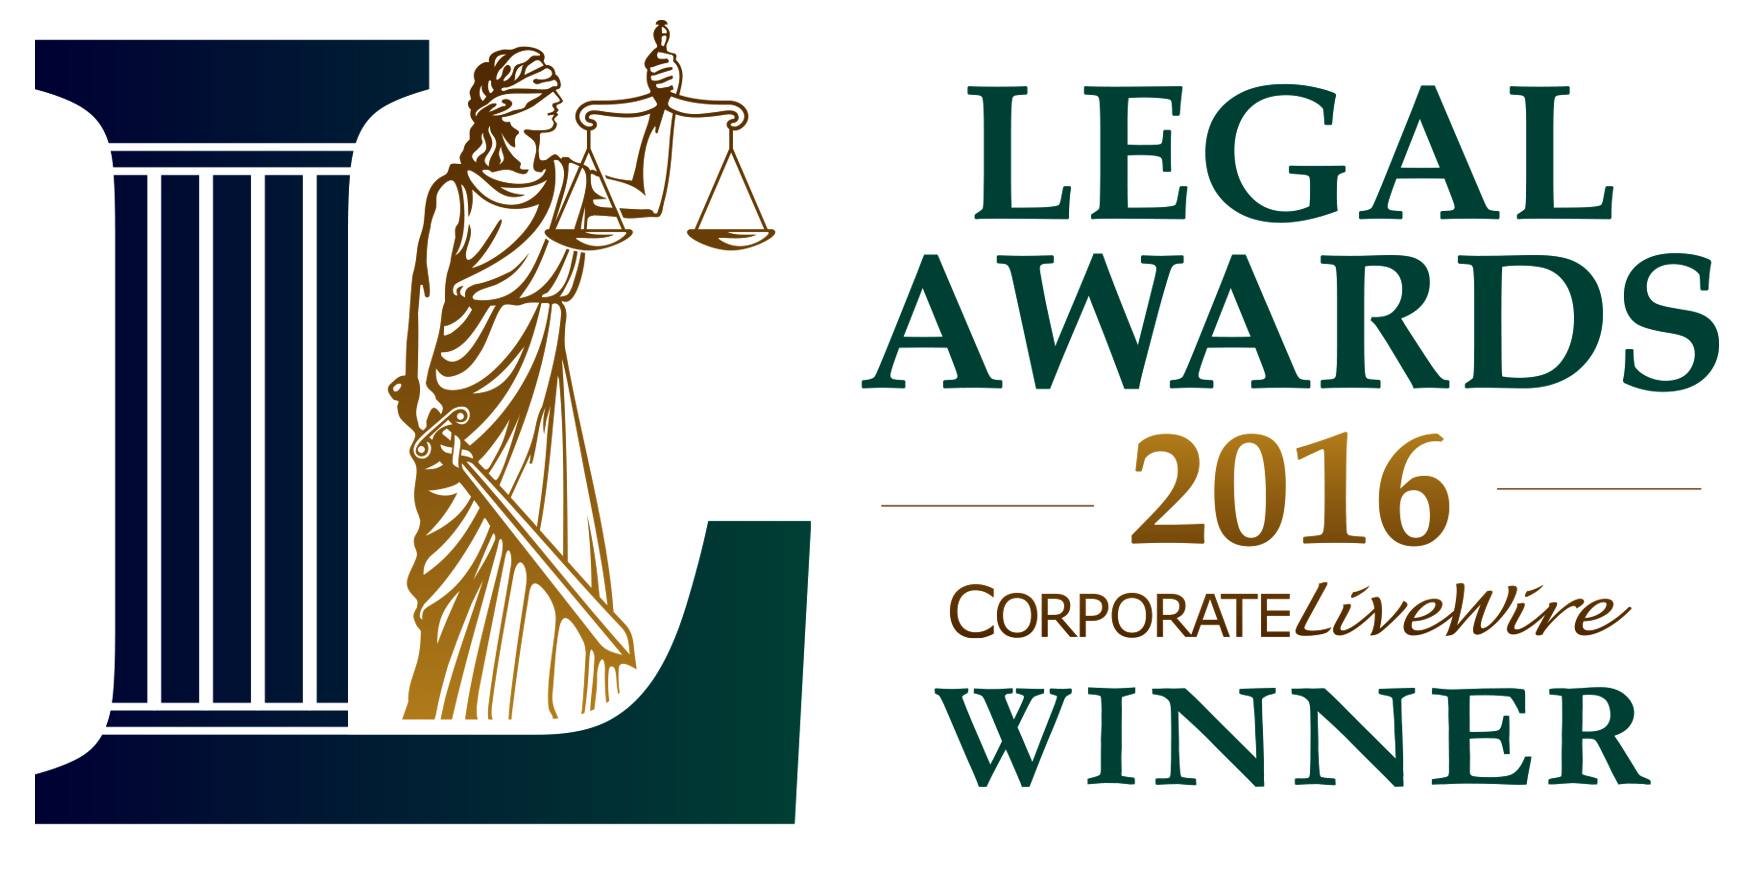 Corporate Livewire's Legal Awards Winner 2016